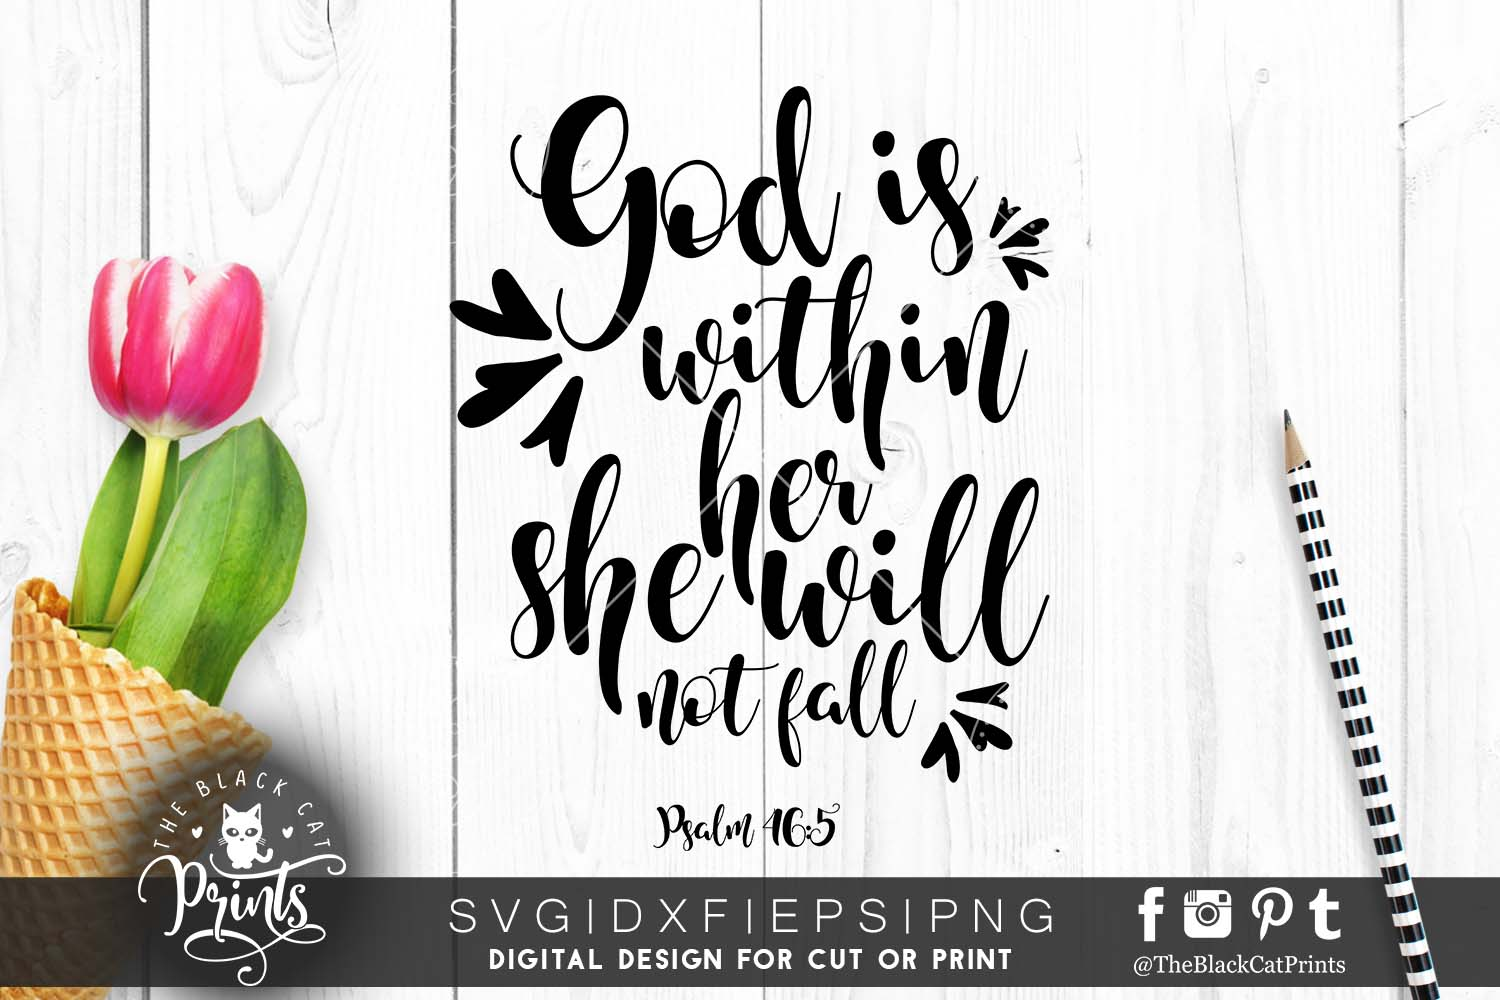 Psalm 465 SVG Bible verse SVG PNG EPS DXF example image 1